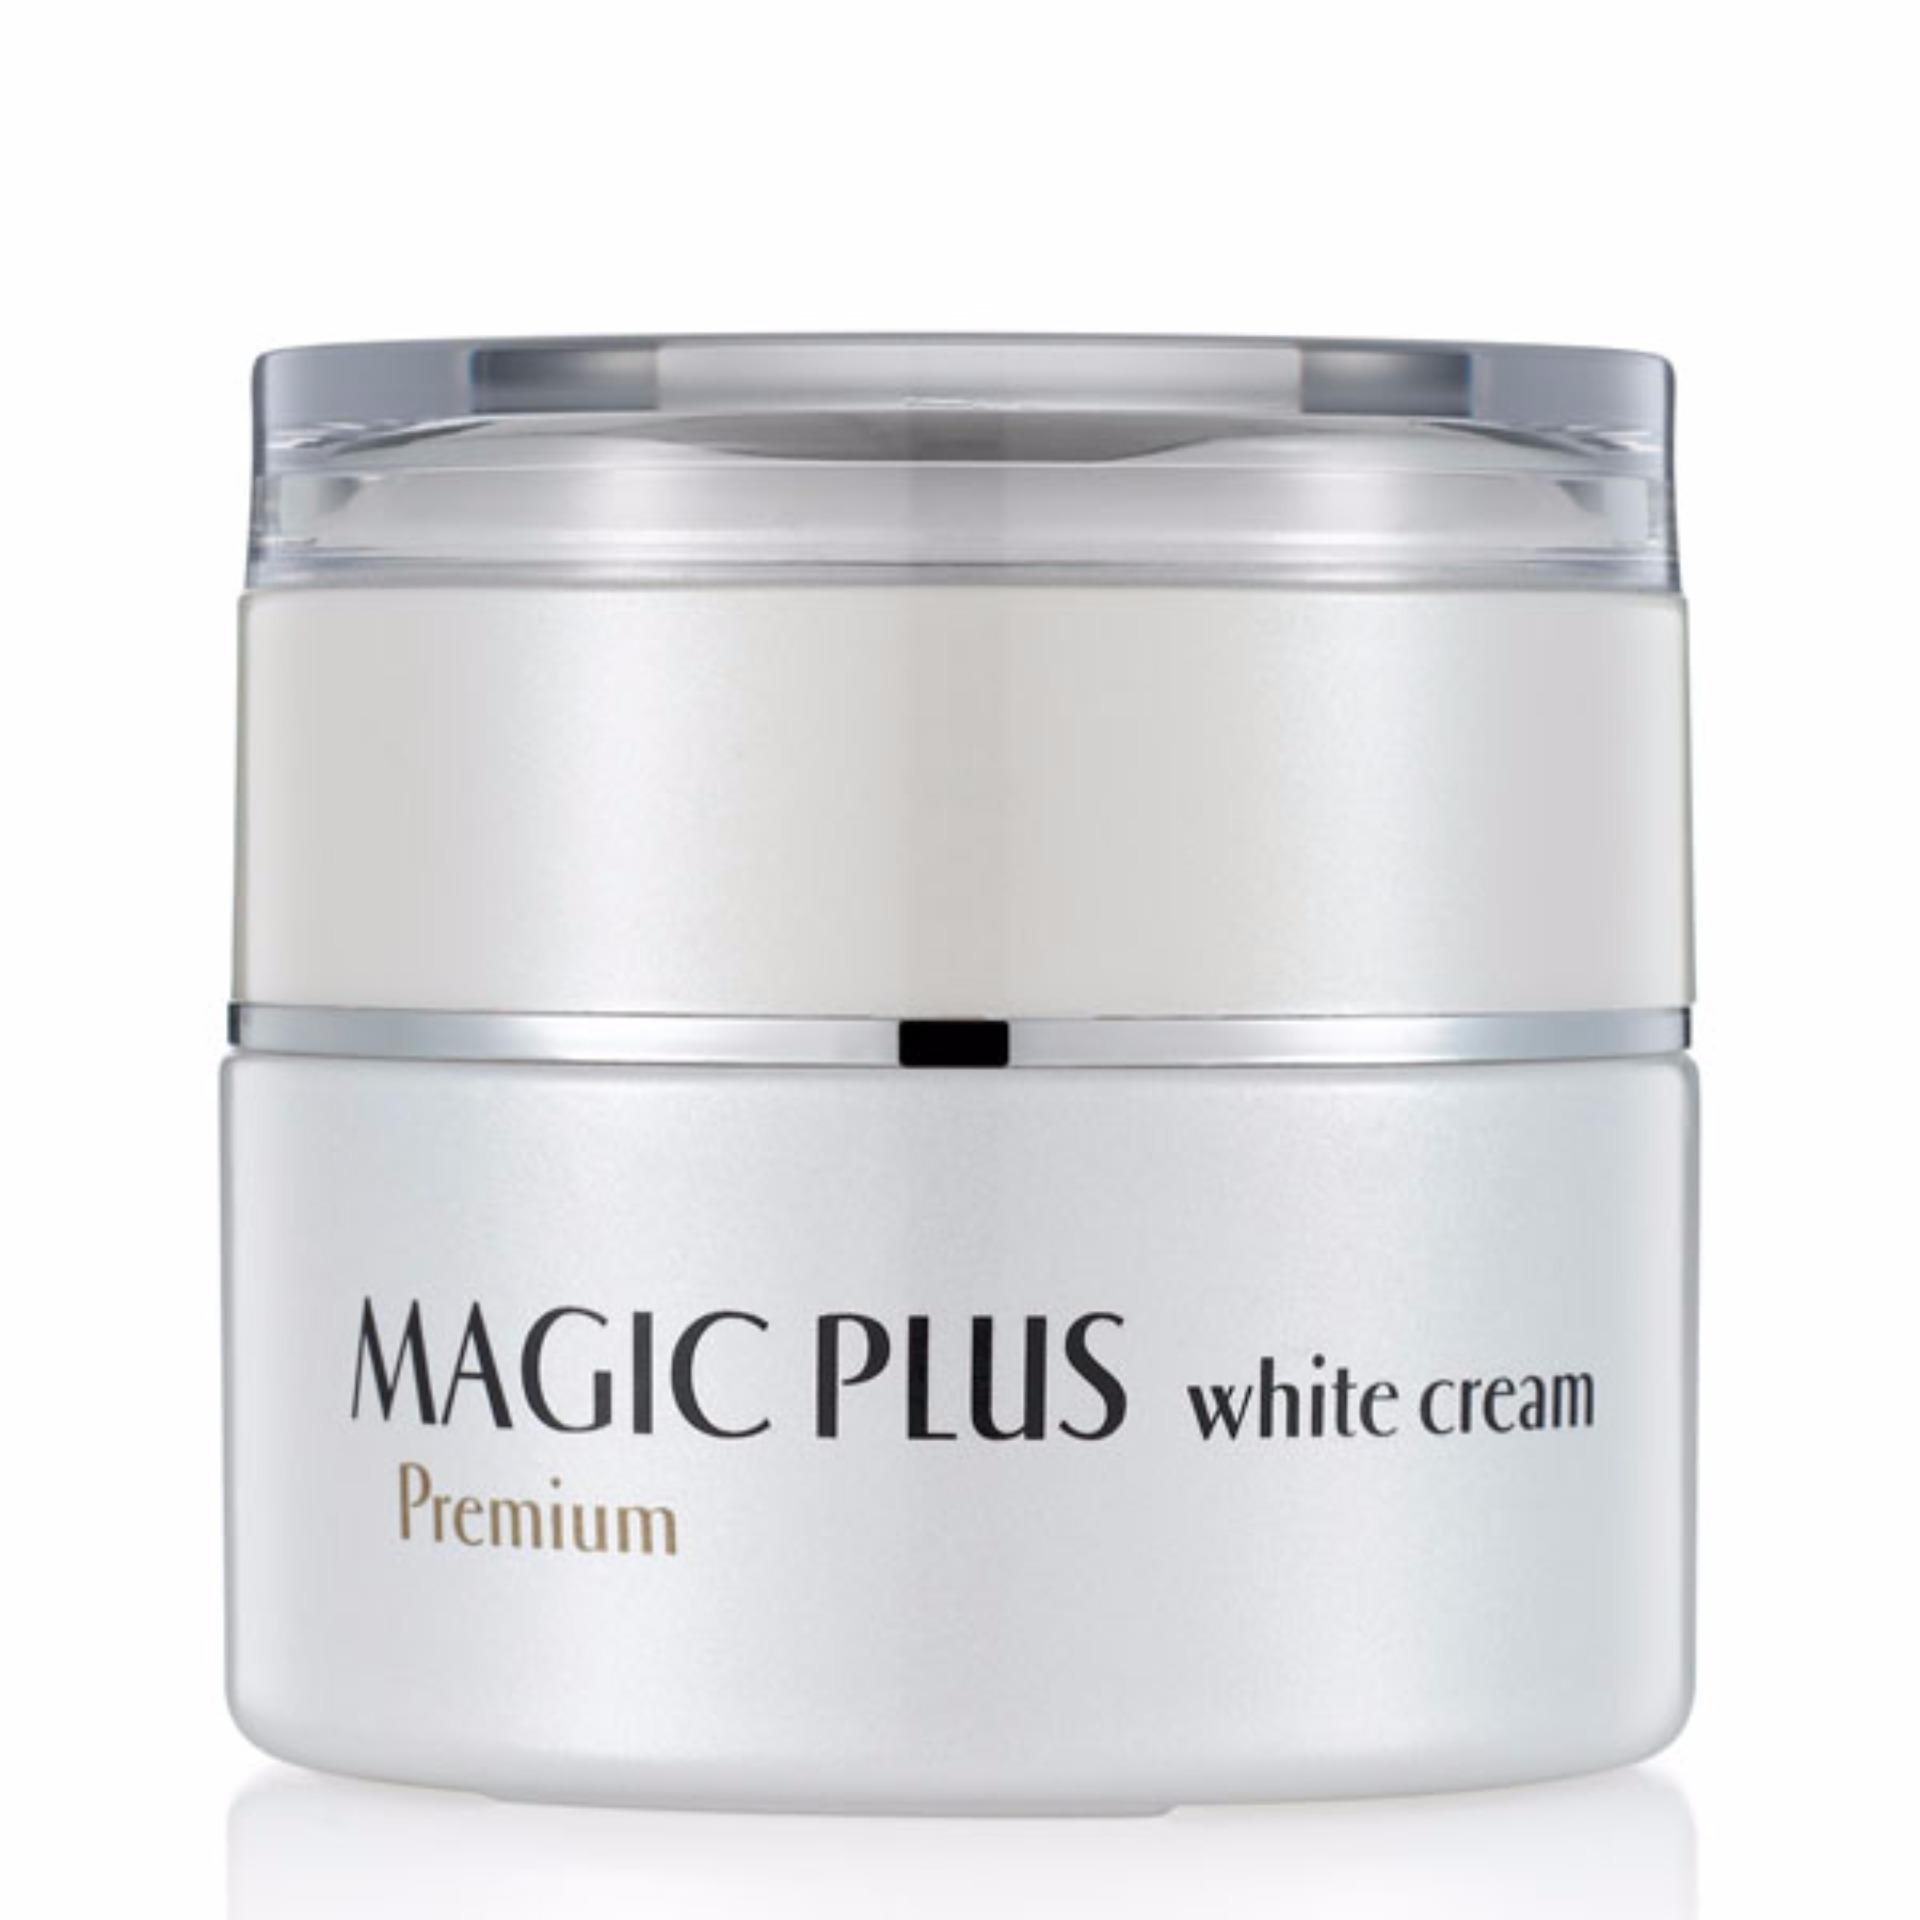 Daftar Harga Magic Plus White Cream Premium Krim Pemutih Wajah Original Korea Asli Aman Kulit Halus Lembut Kencang Cerah Segar Alami Menyamarkan Noda Dan Flek Hitam Beauty 35 Gr Magic Plus